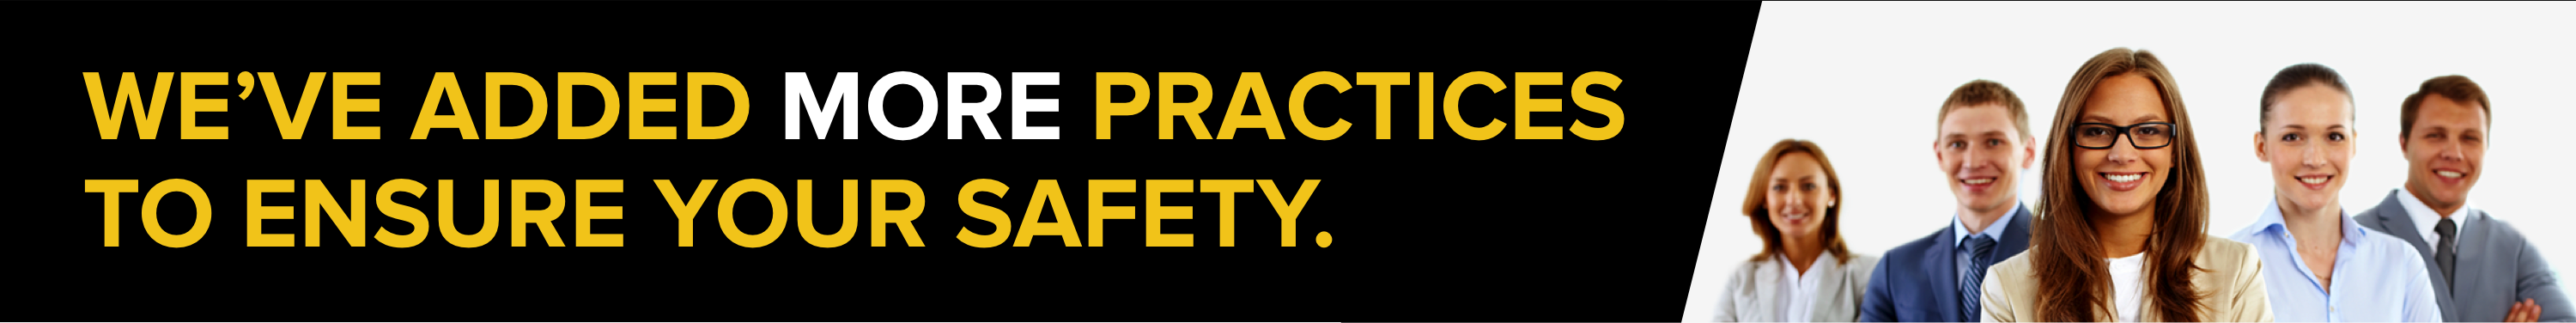 We've added more practices to ensure your safety